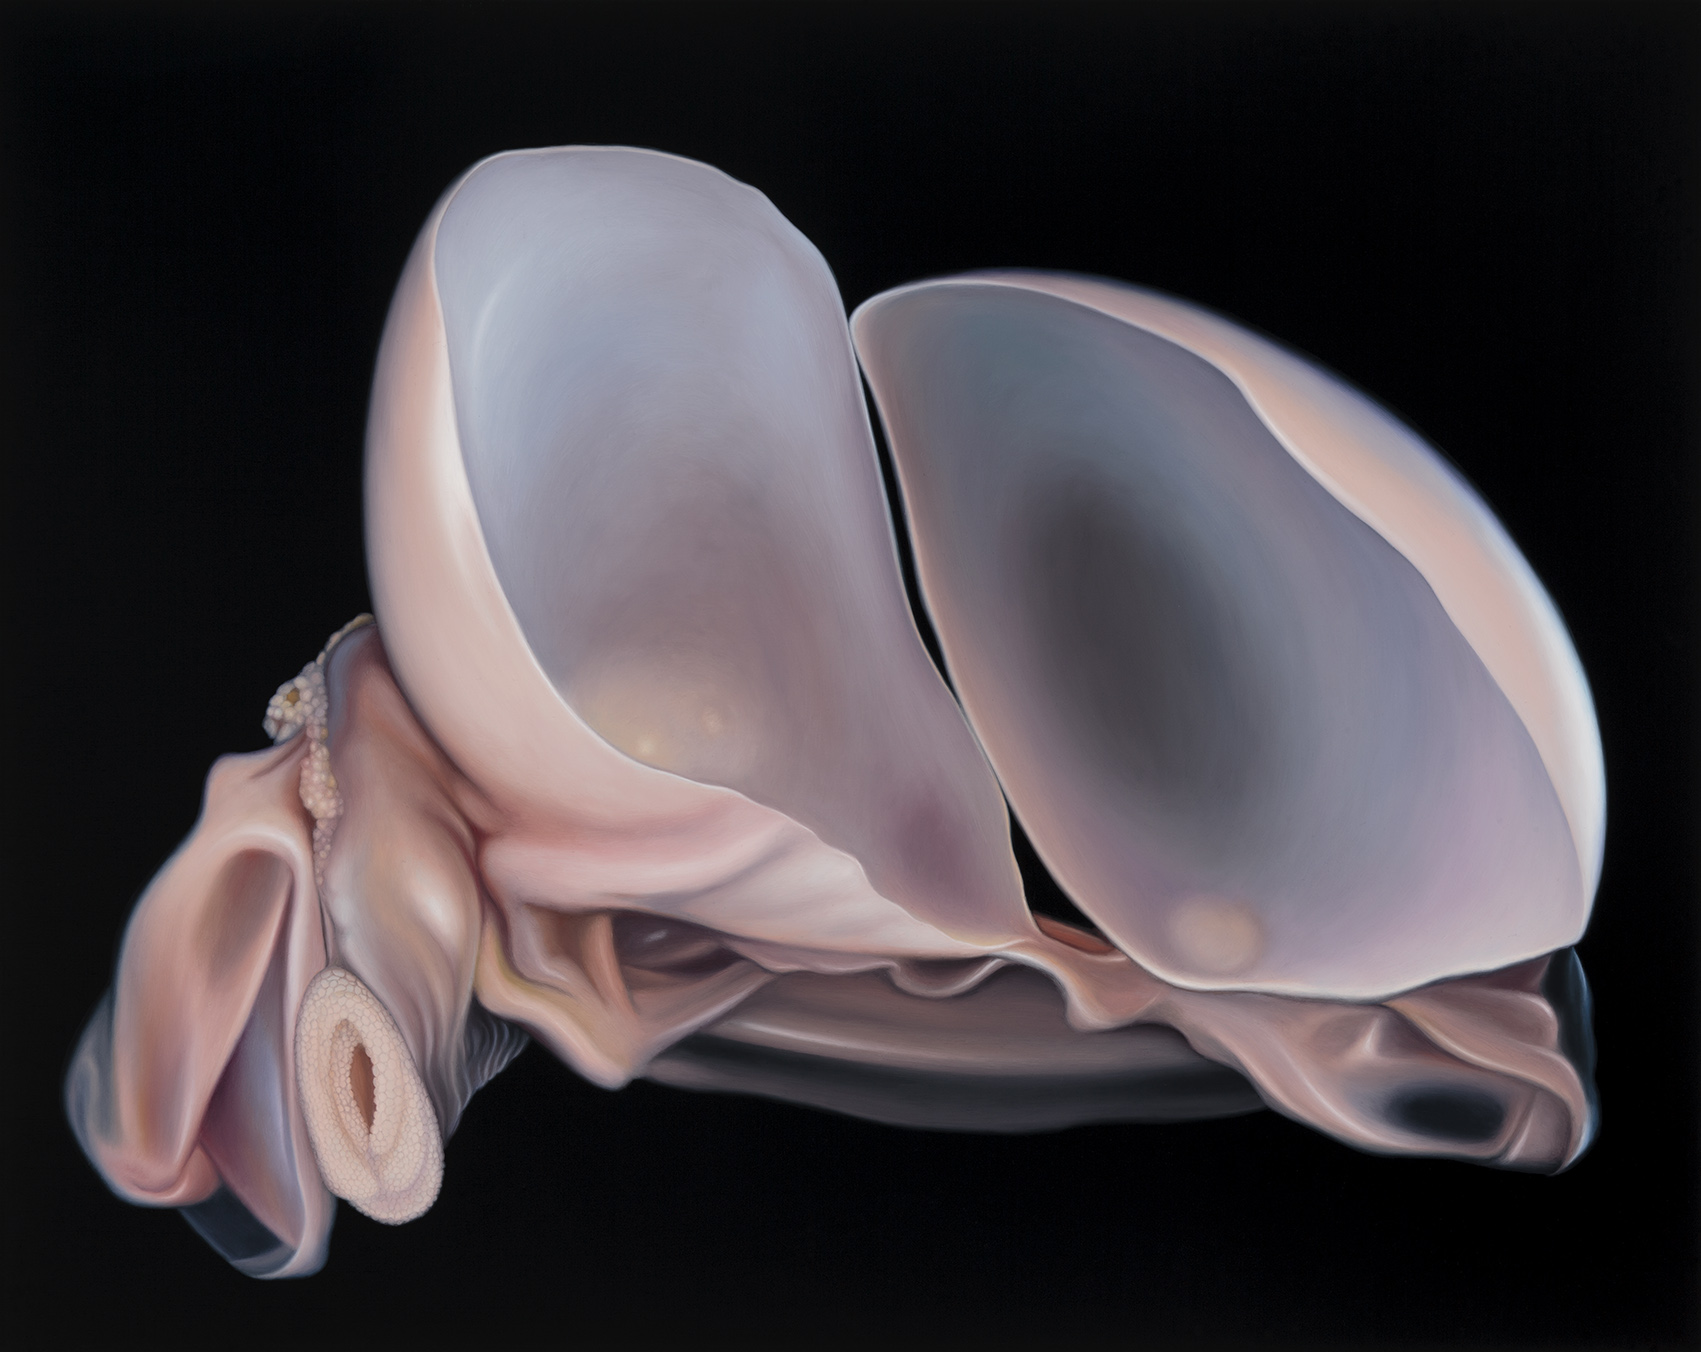 Copy of  Untitled, 2014. Oil on board, 30 x 38 cm